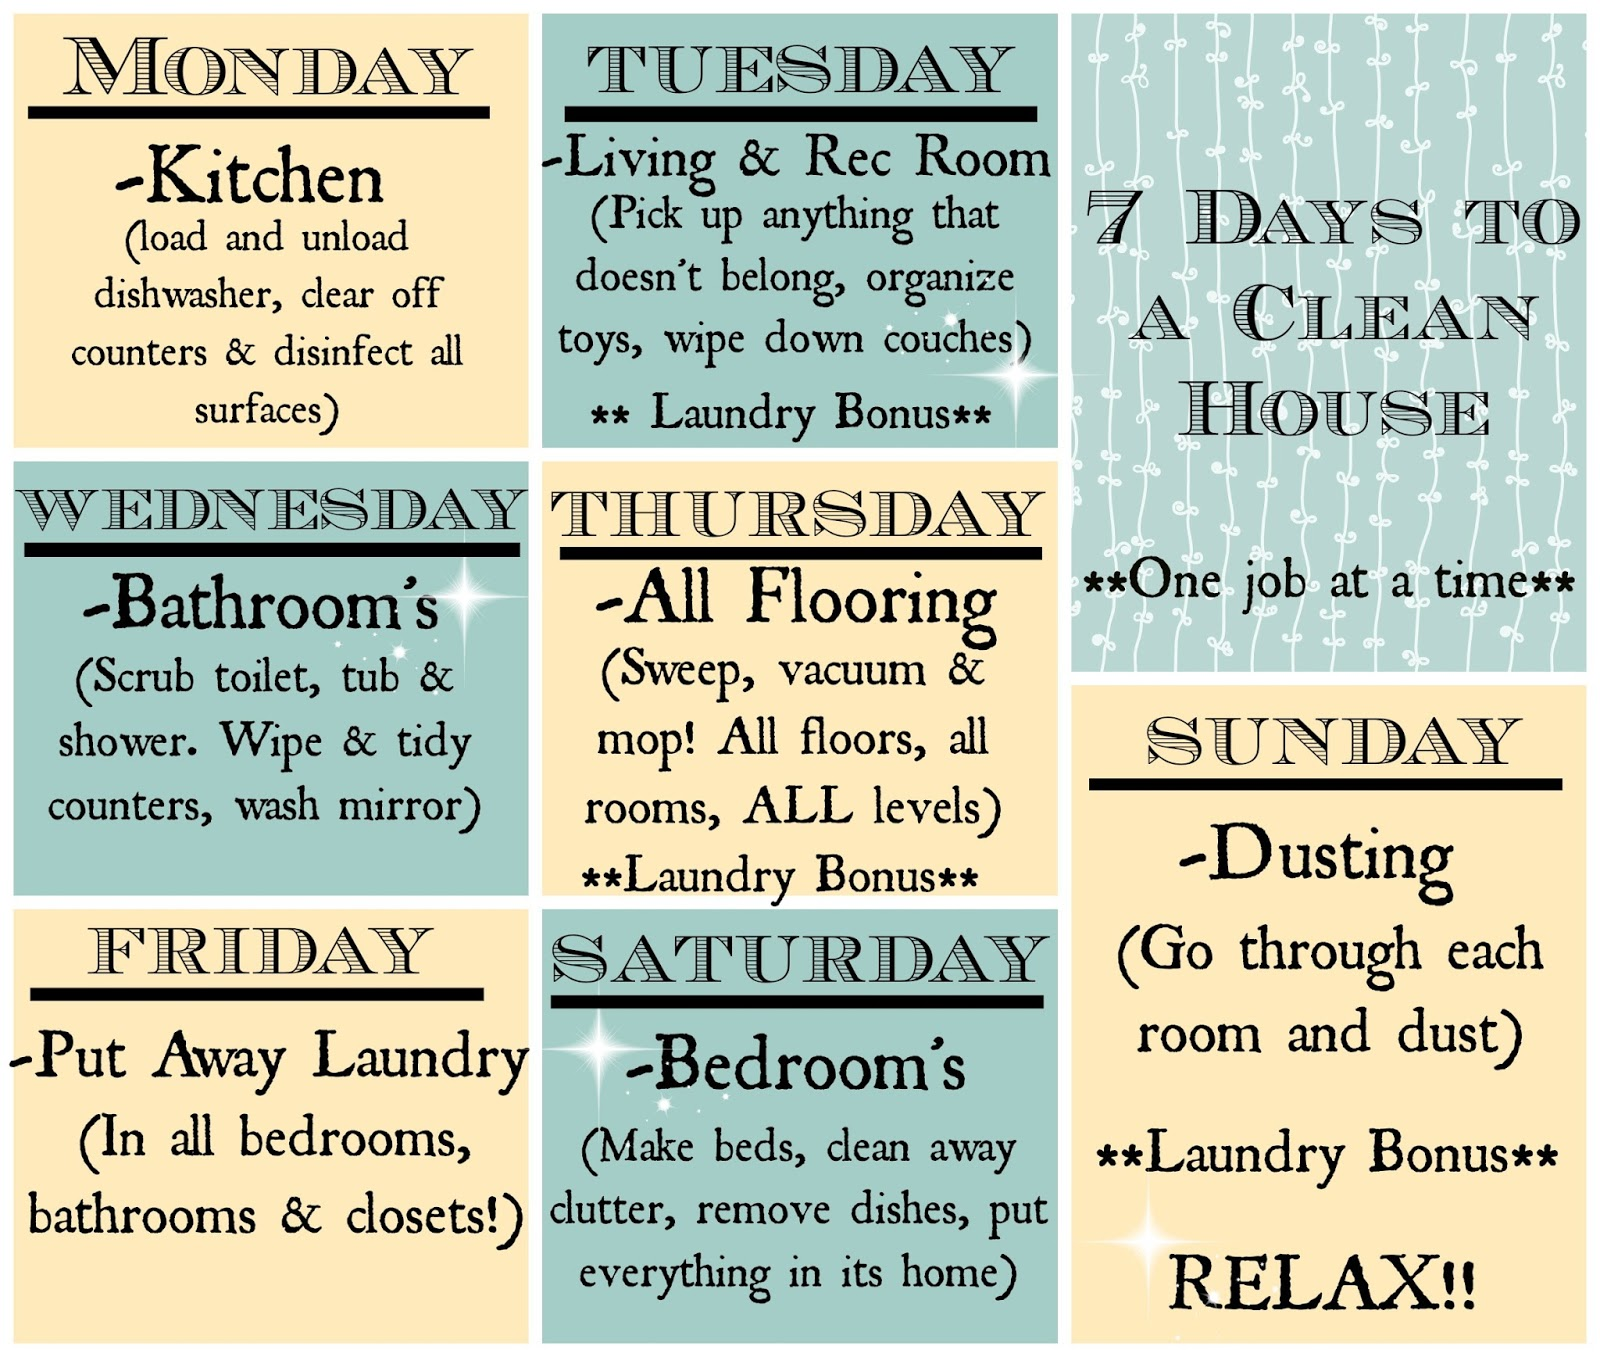 Clean work space quotes quotesgram - House cleaninghour guide ...